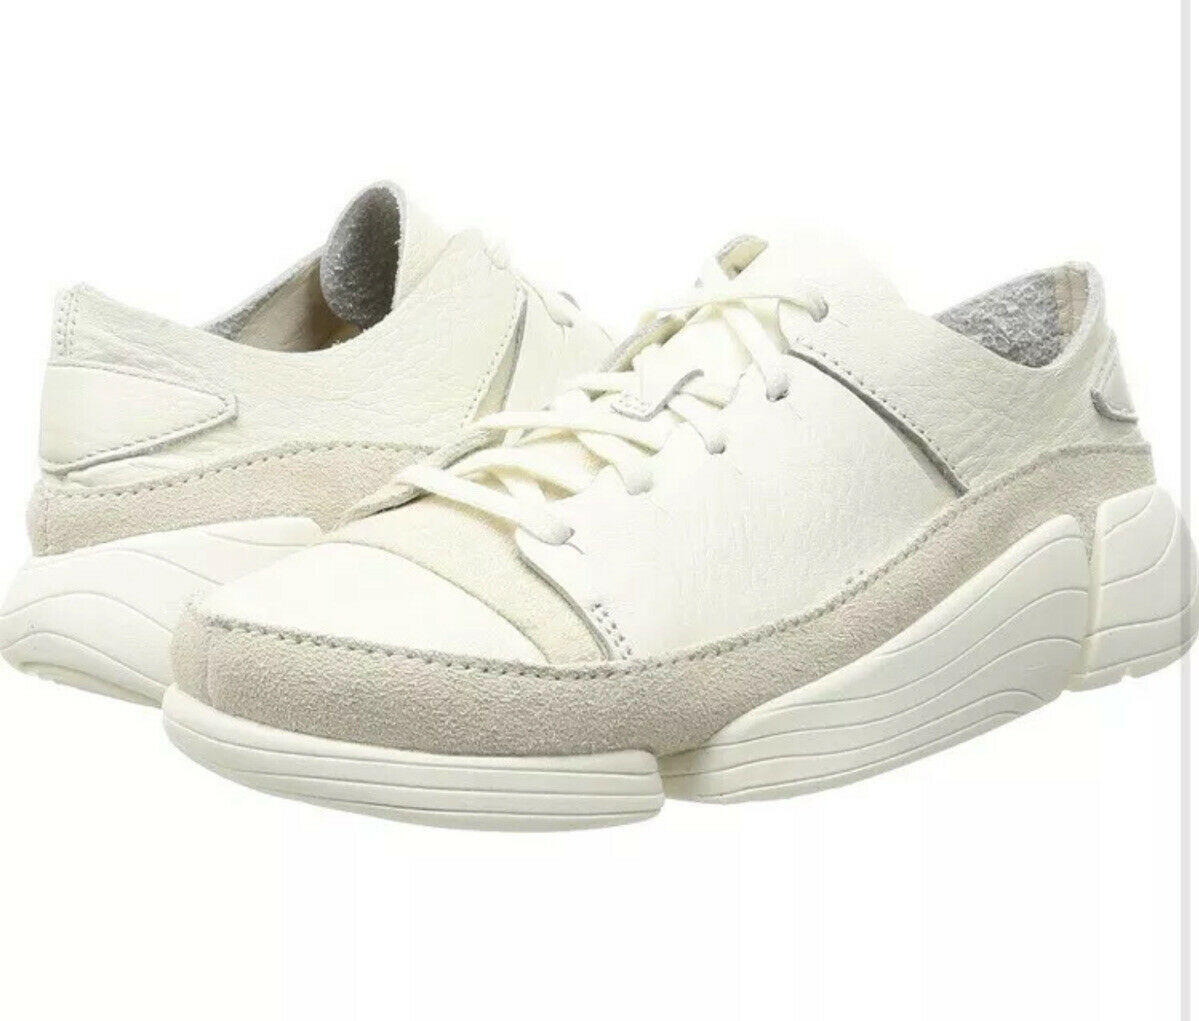 New Clarks Trigenic Evo UK Size 7.5 G Mens White Leather Shoes Trainers 41.5 EU